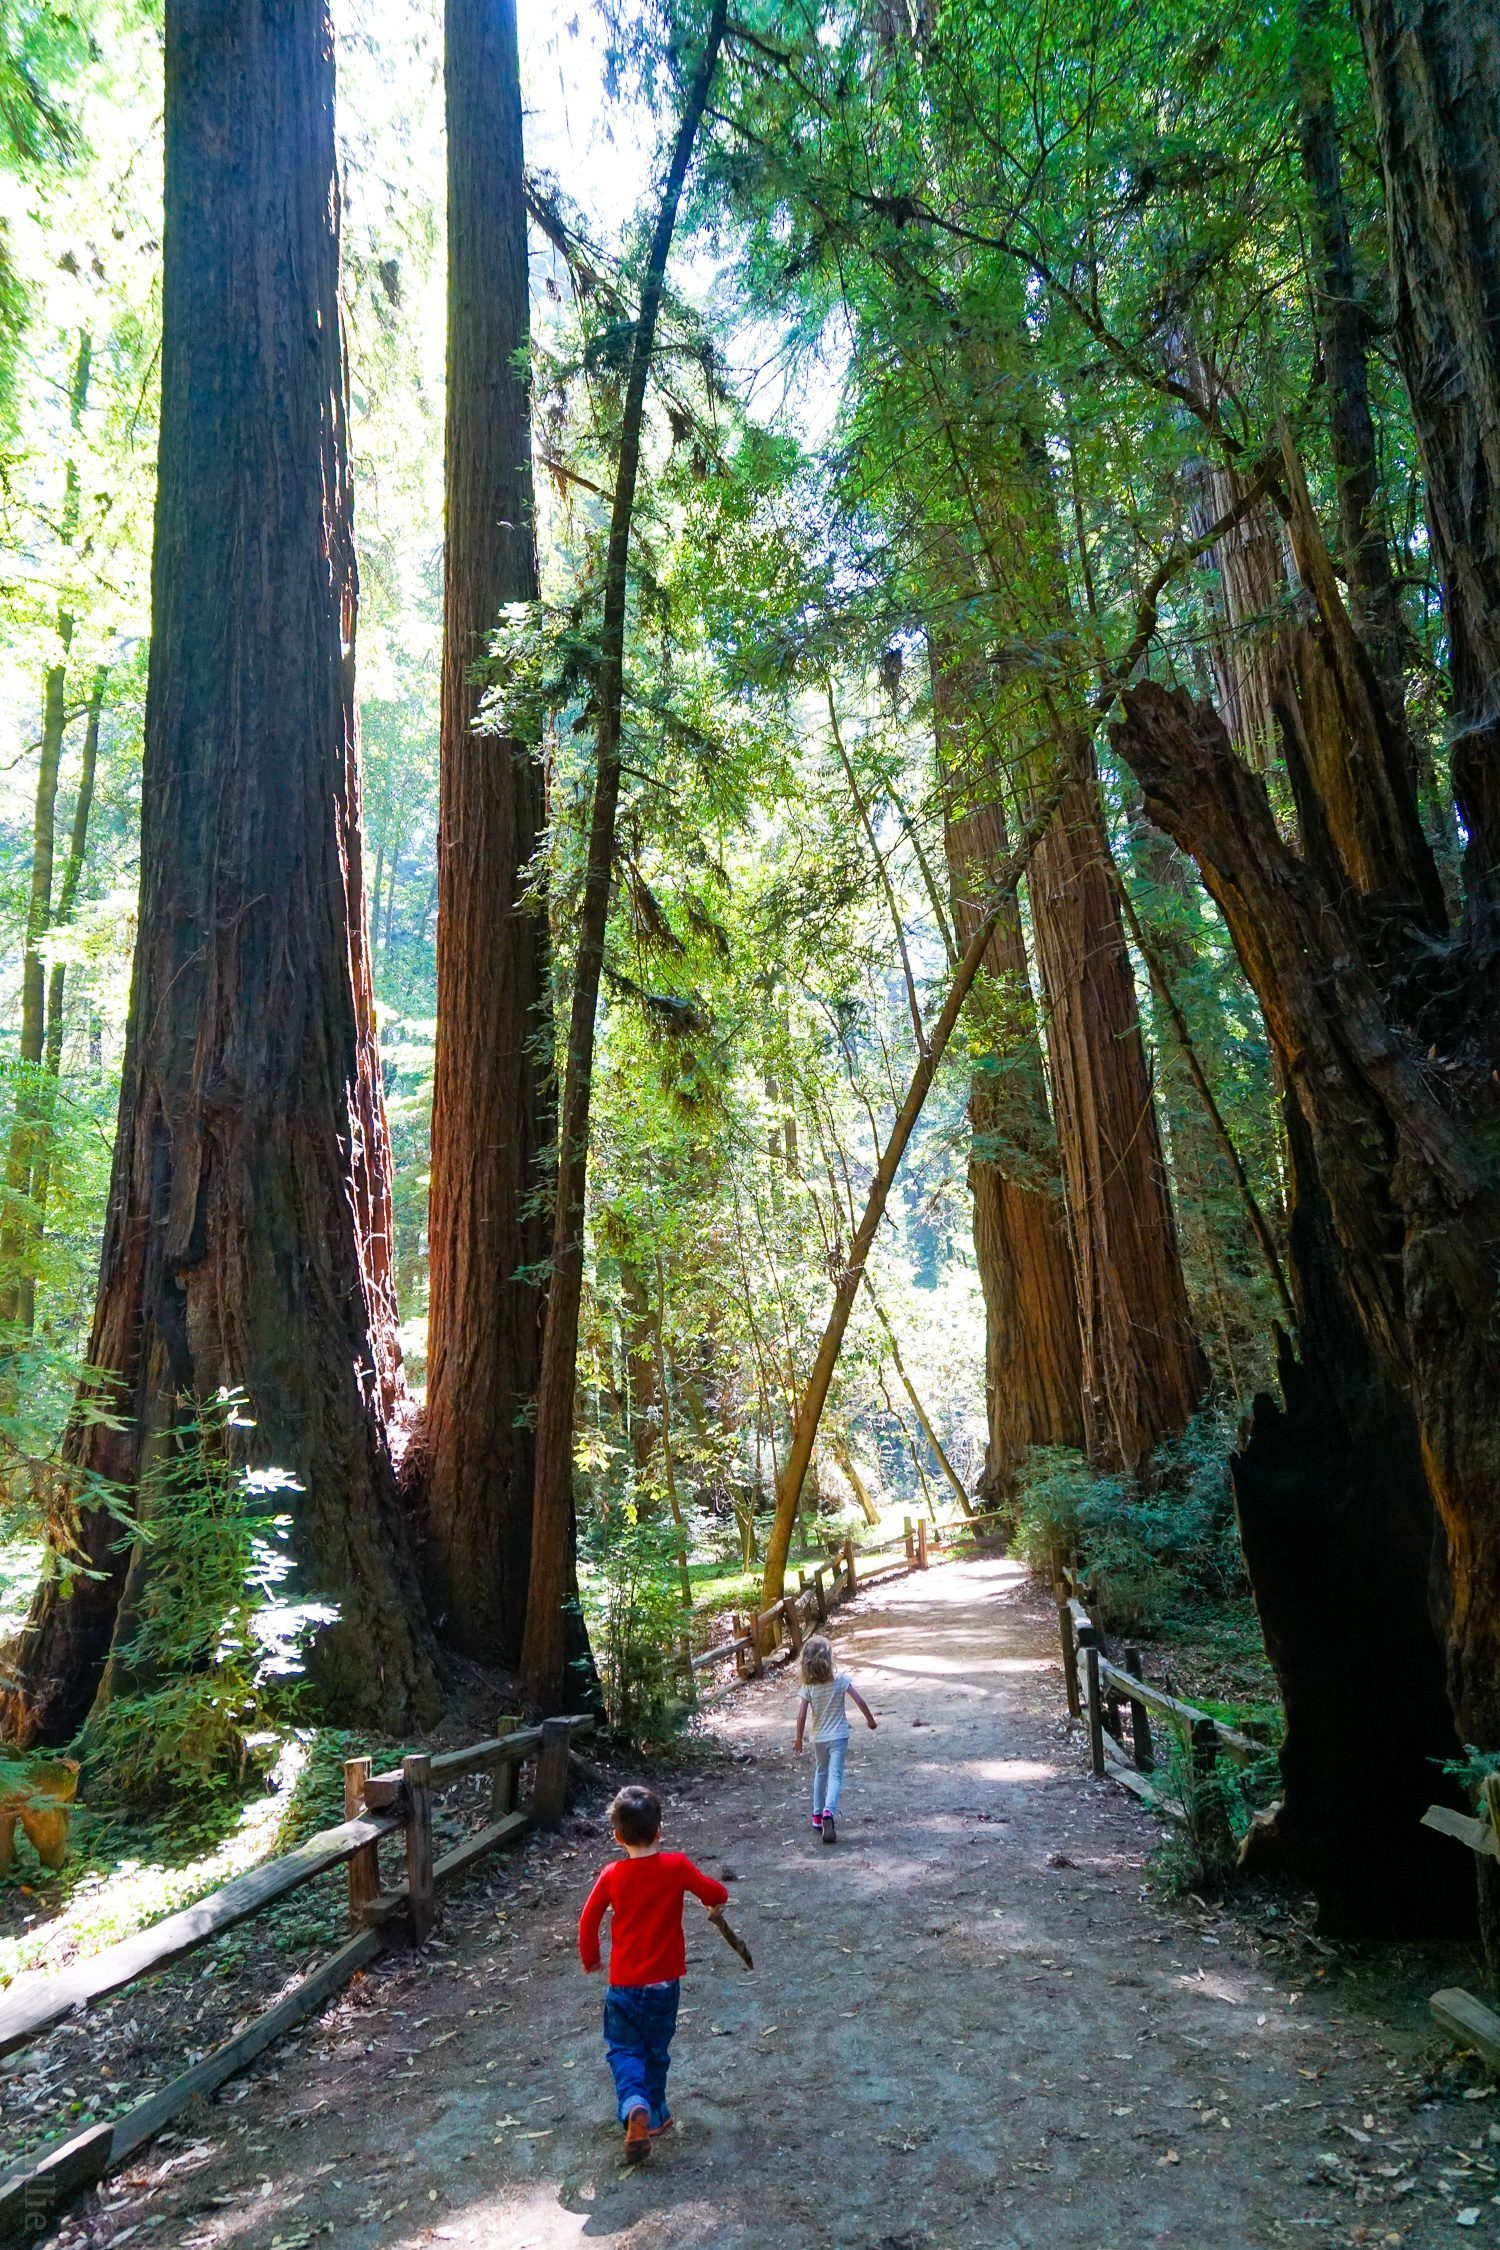 A California Redwoods Hike Near Santa Cruz, Ideal for Kids: The Redwood Grove Loop Trail in Henry Cowell State Park is the best day trip for CA family travel!